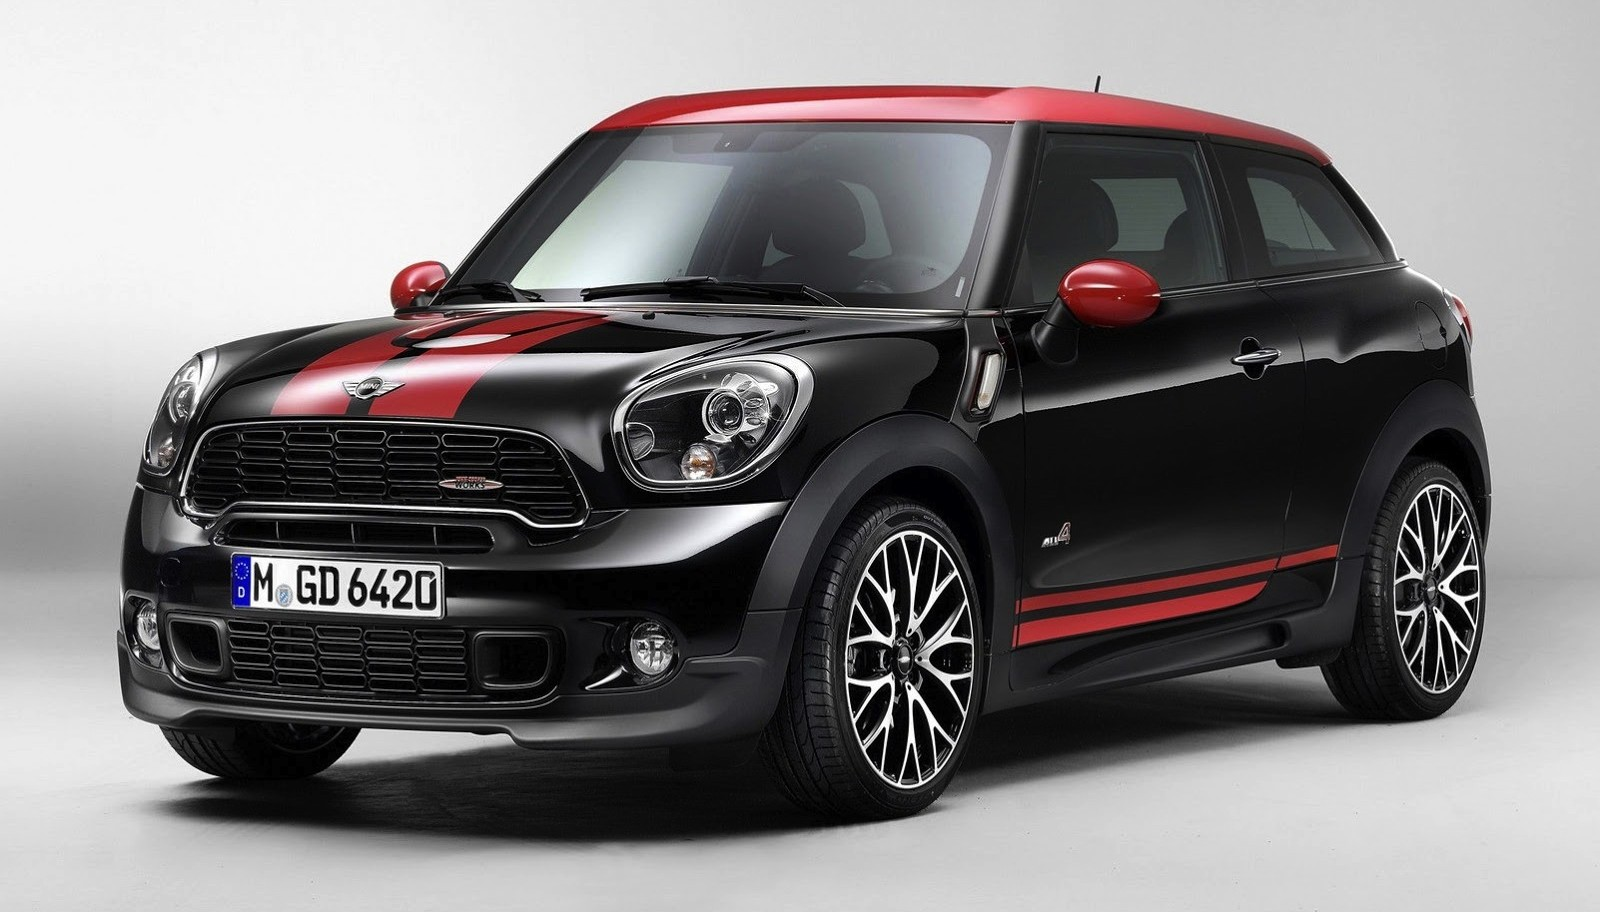 mini cooper 2013 paceman jcw wallpaper world. Black Bedroom Furniture Sets. Home Design Ideas